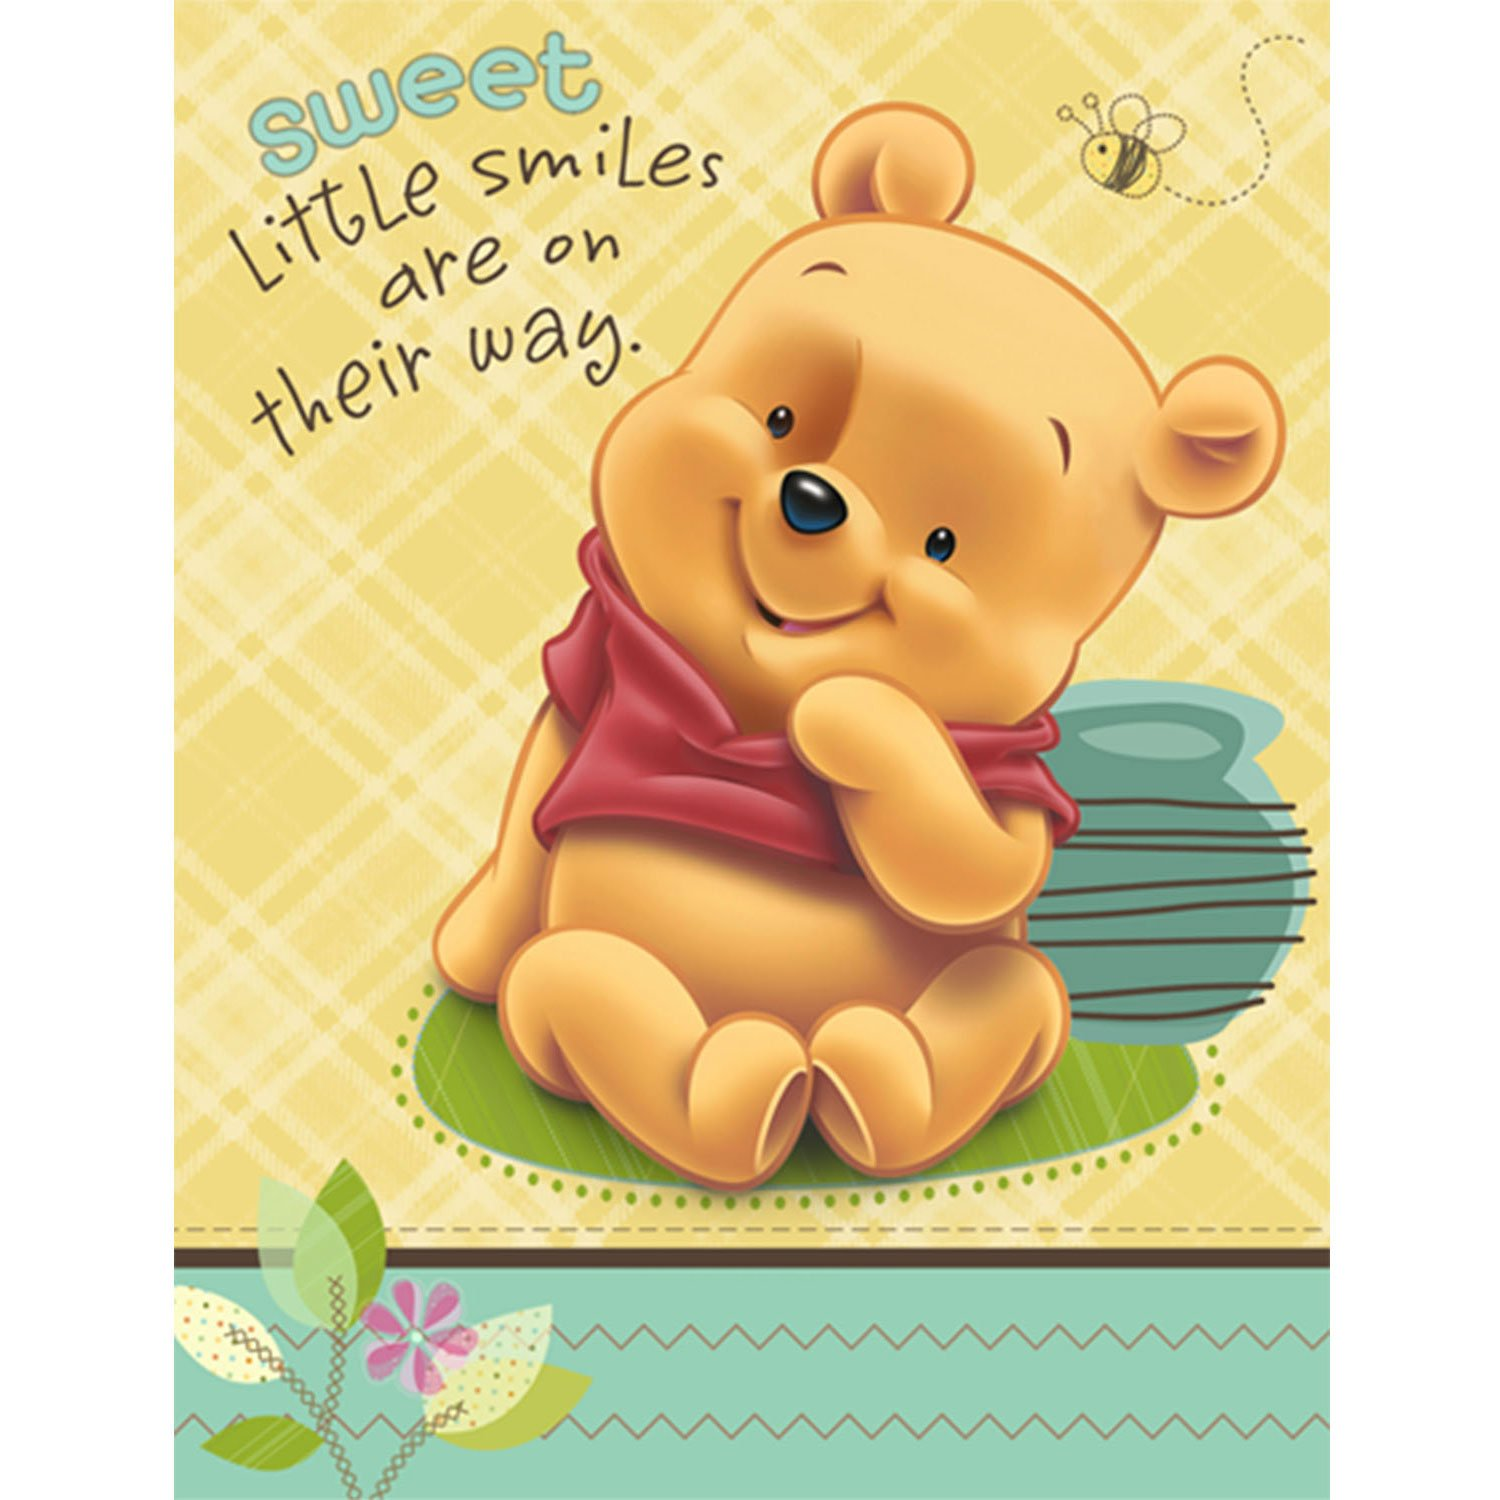 amazon com baby pooh and friends baby shower invitations 8 count rh amazon com Winnie the Pooh Pictures When a Baby Pooh Bear Clip Art